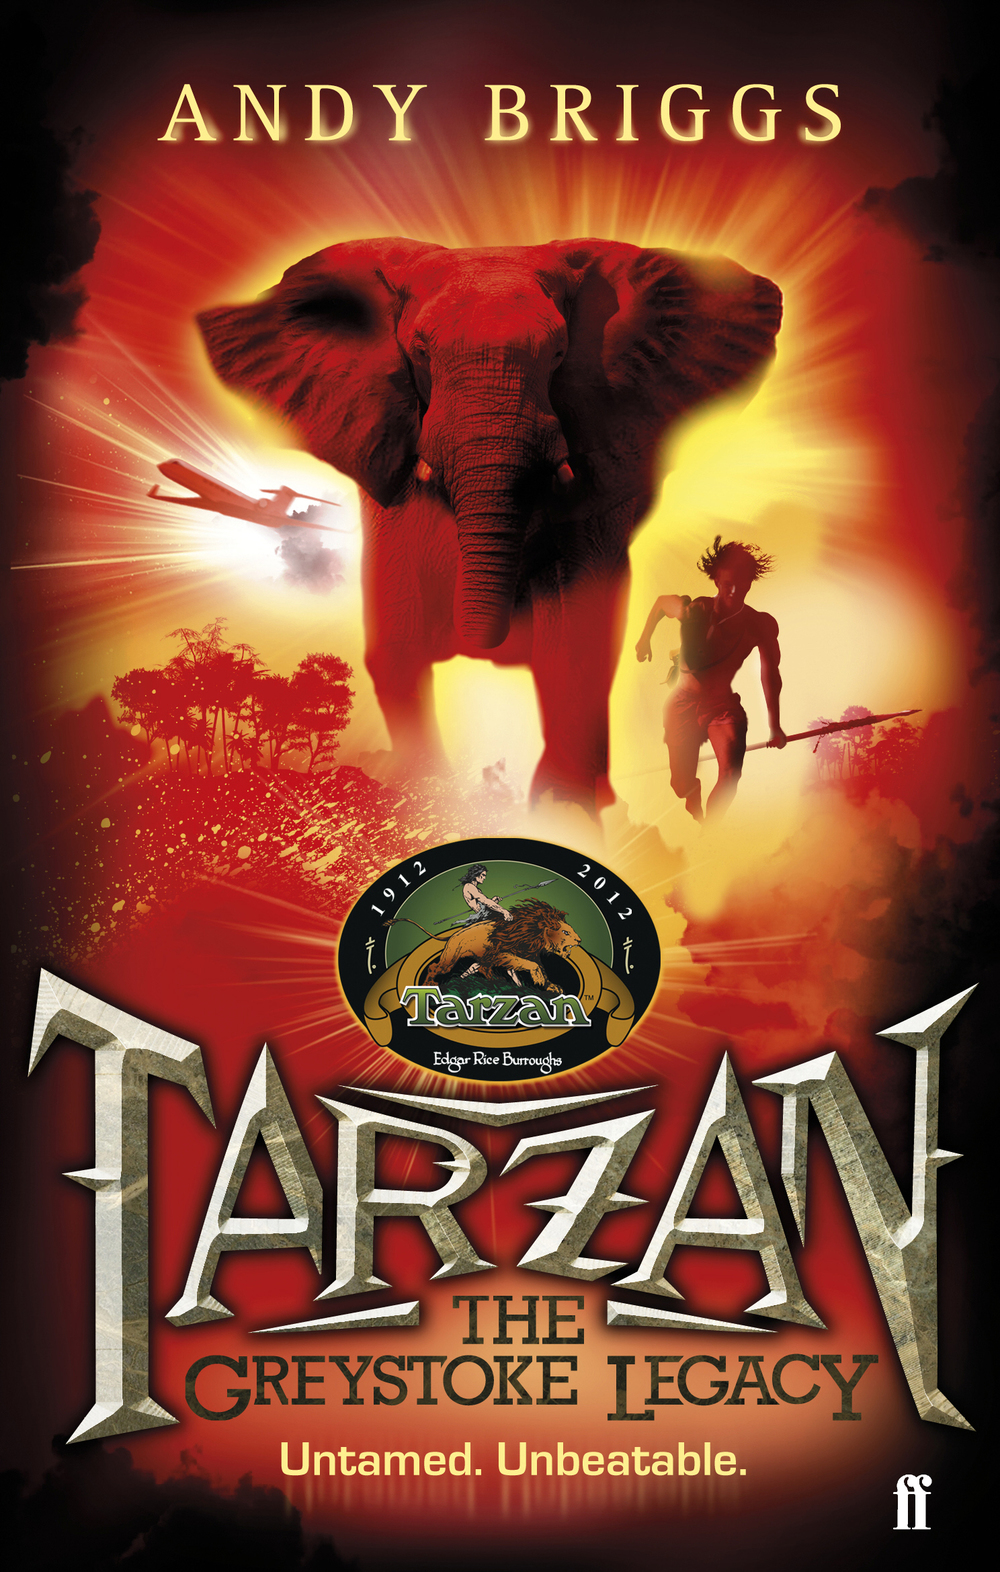 [BRIGGS] TARZAN The Greystoke Legacy - UK, Faber final [front].jpg